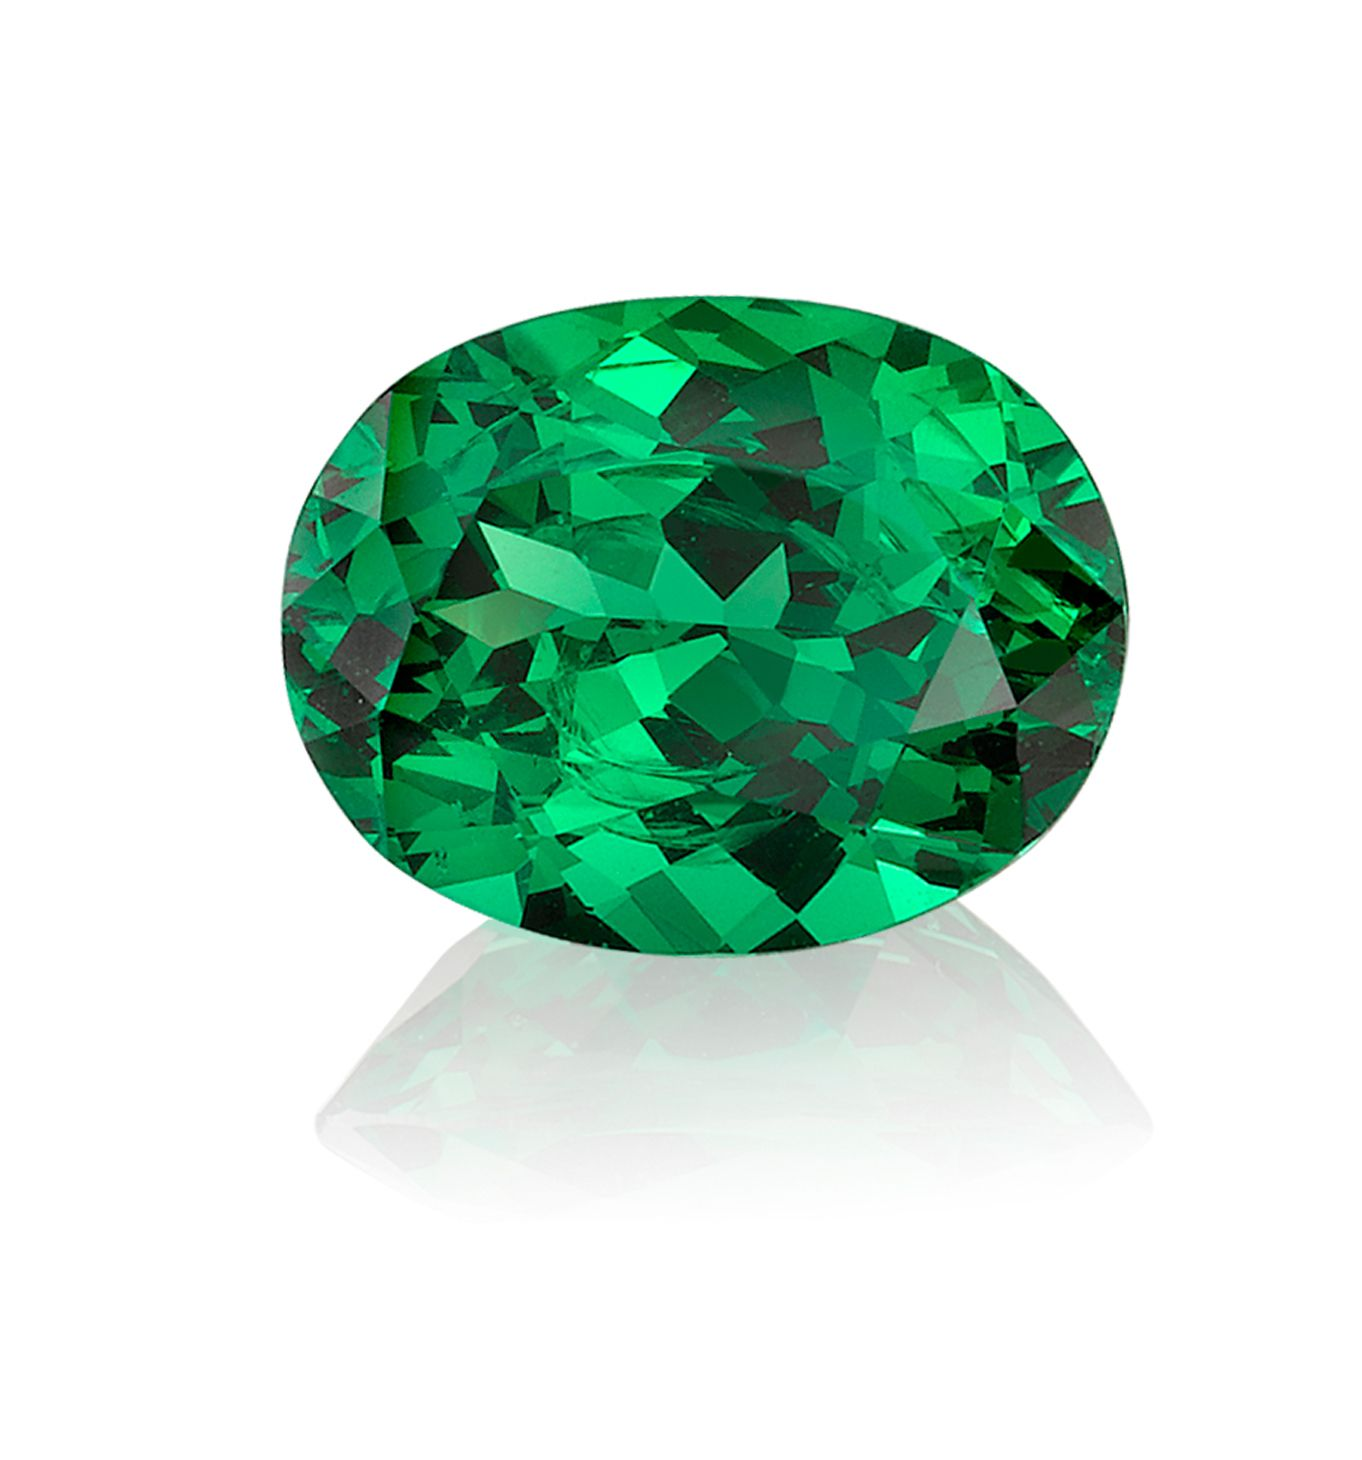 at com carvings garnet gemstone tsavorite thebrazilianconnection and tsavoritewebpage gemstones